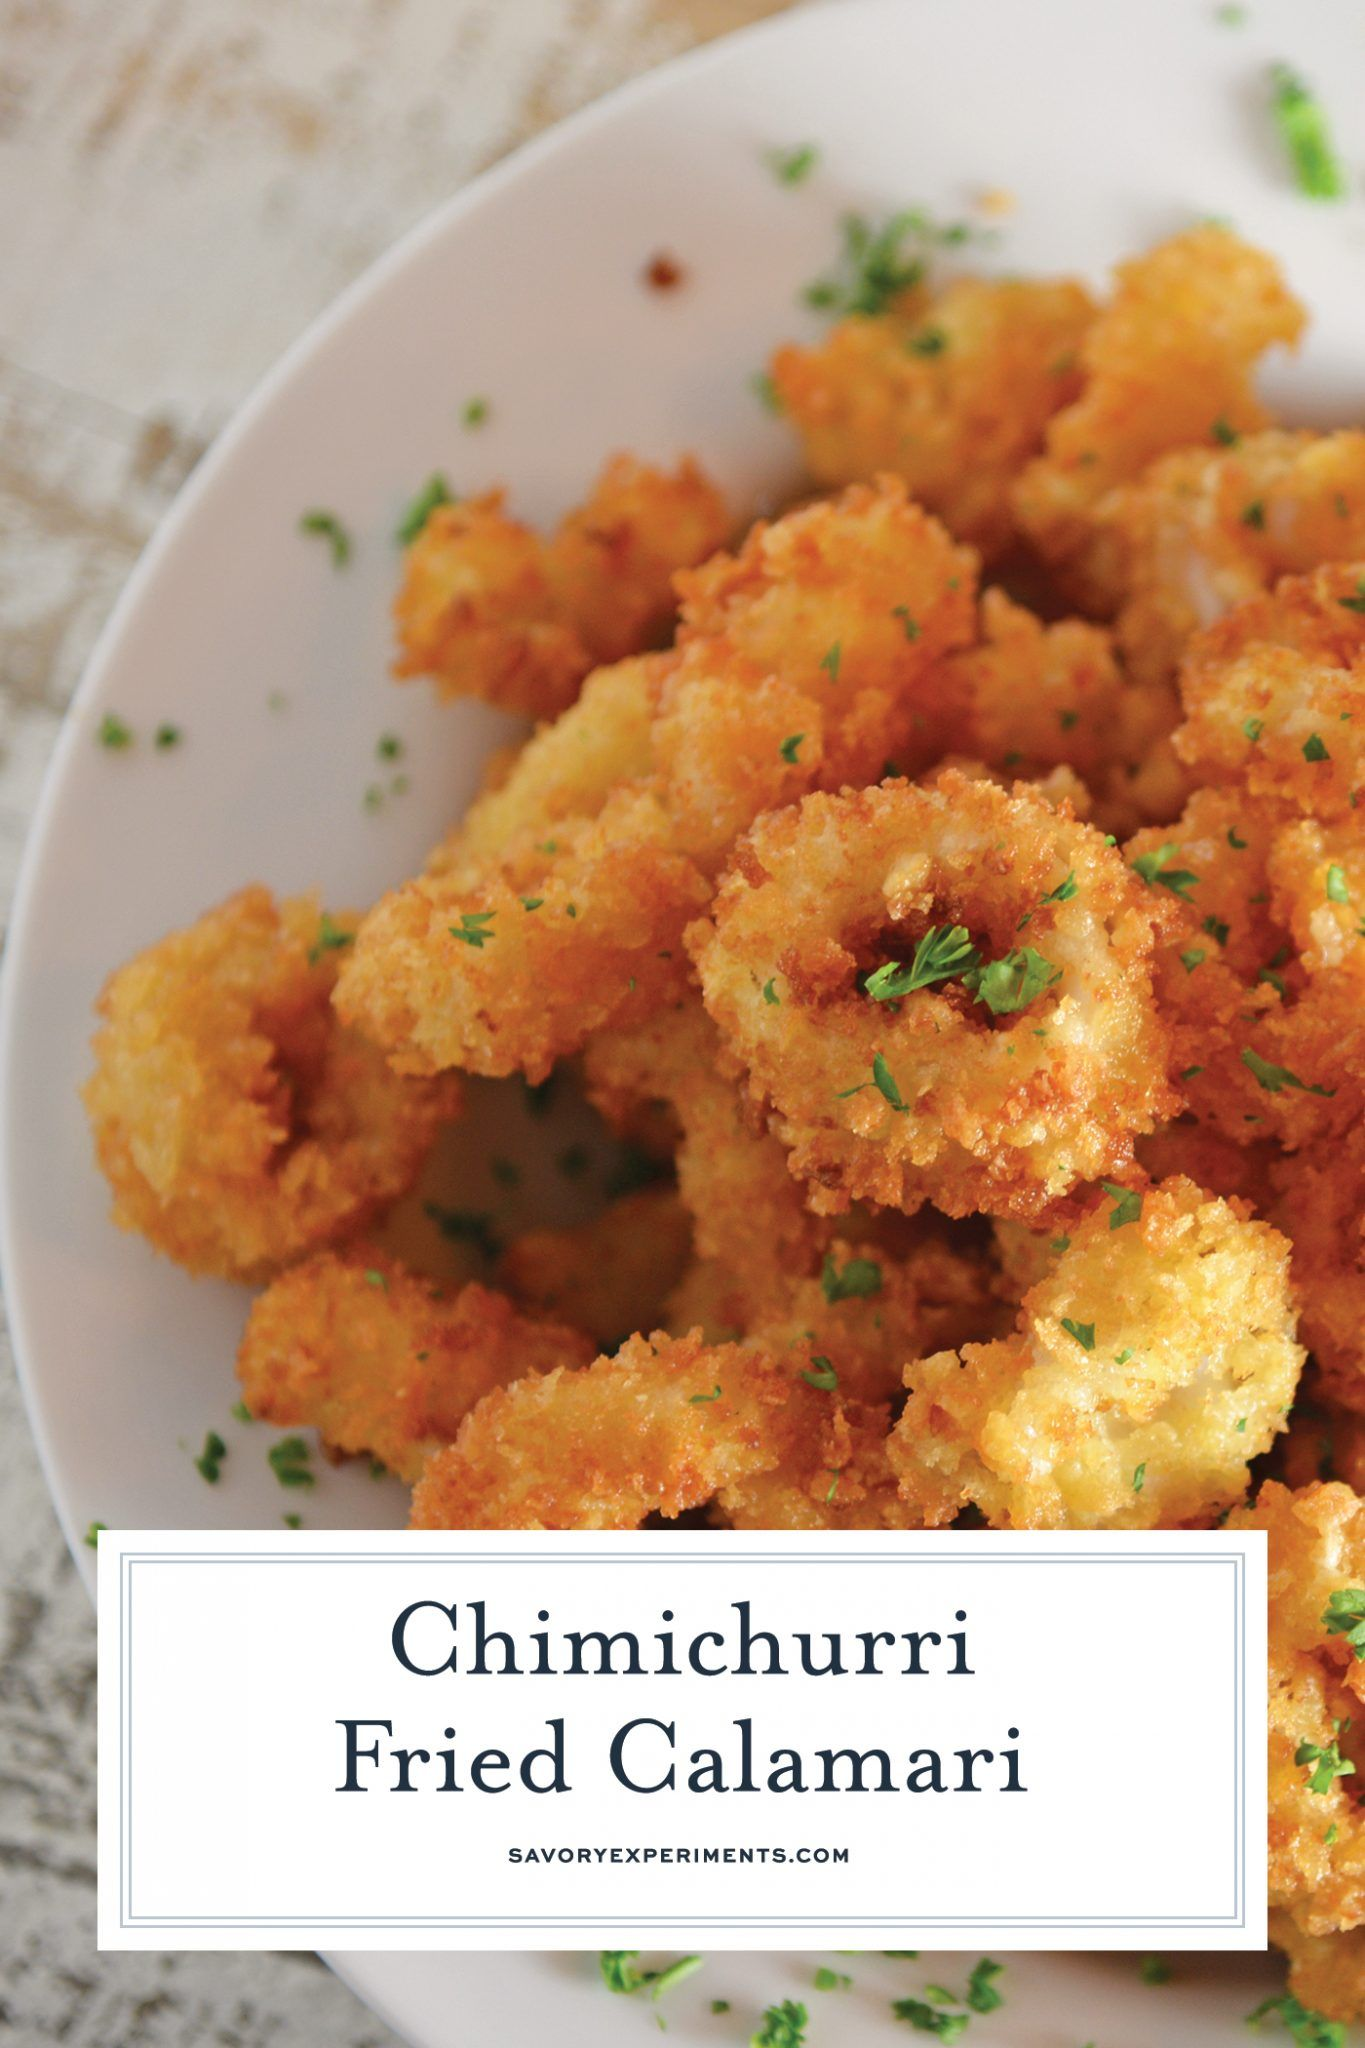 Chimichurri Fried Calamari is a quick and delicious